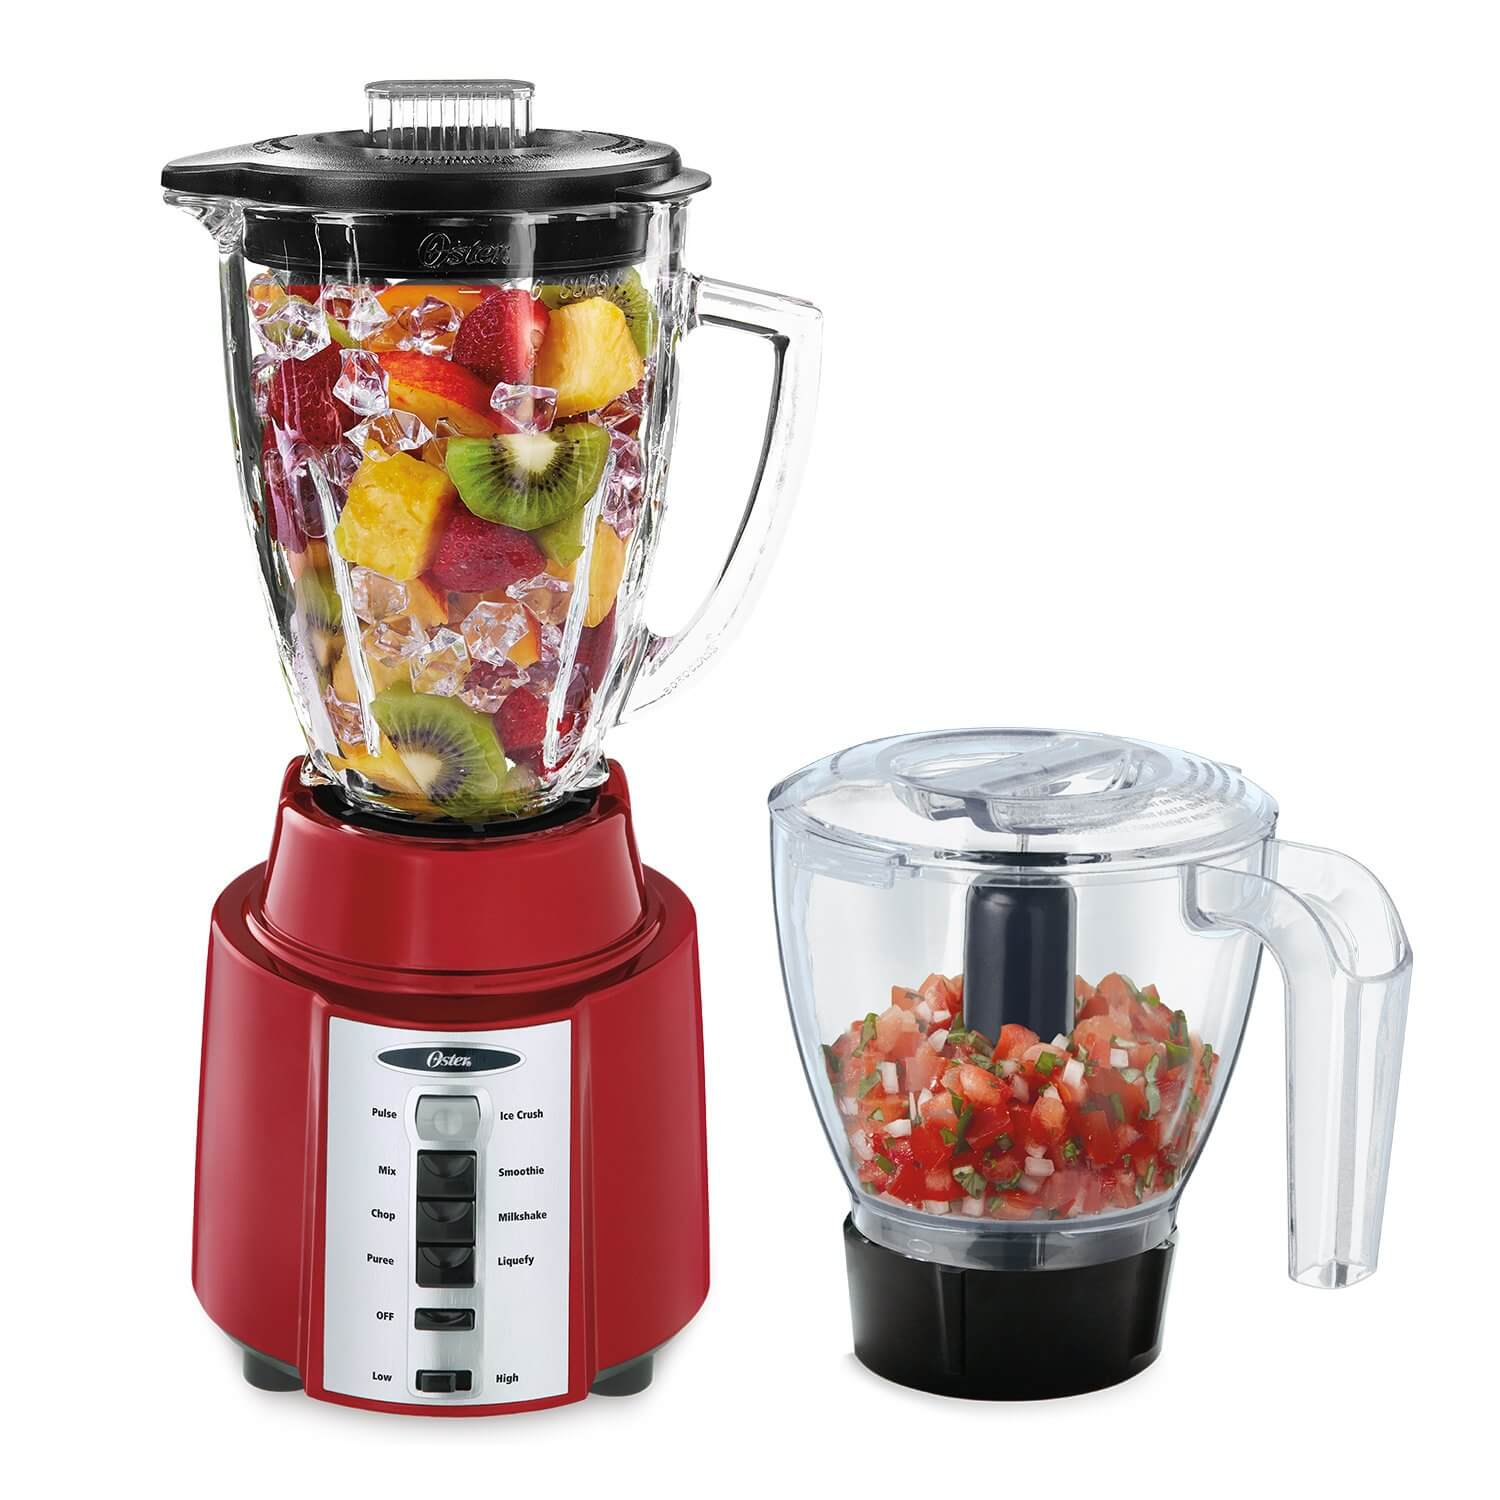 Oster Rapid Blend 8-Speed Blender